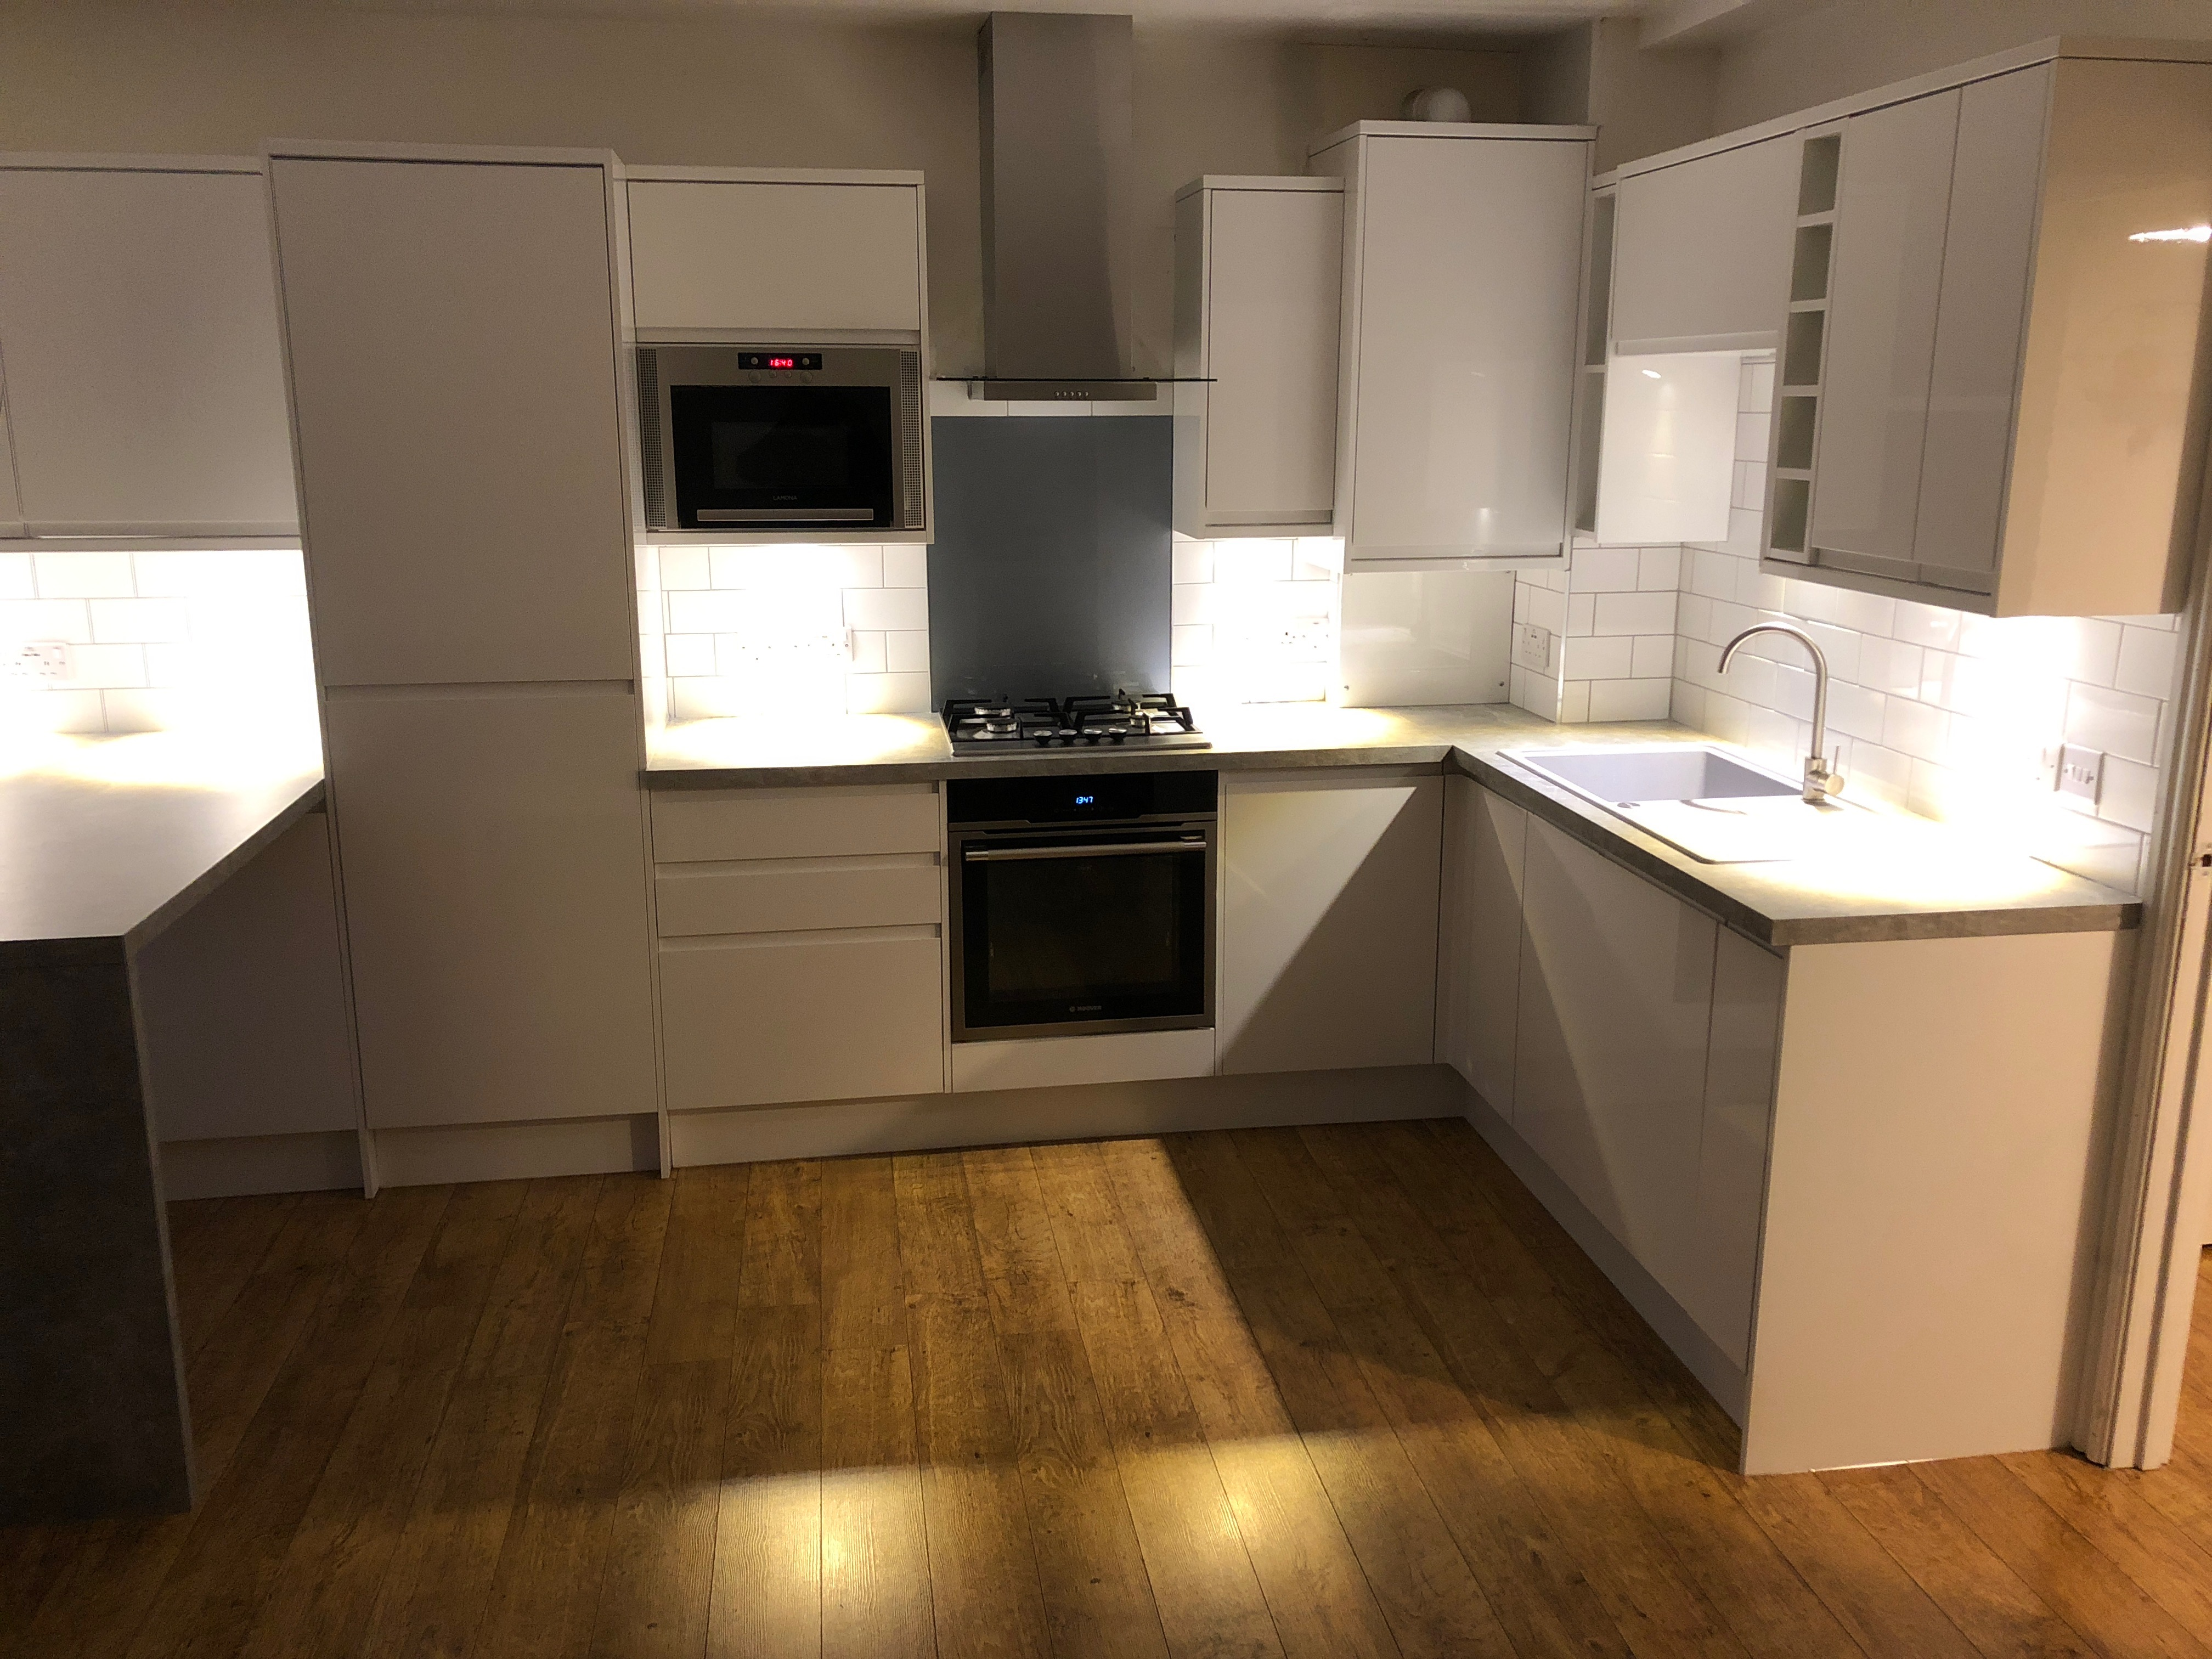 Kitchen Project Bedfordshire - TNM Property Services2315